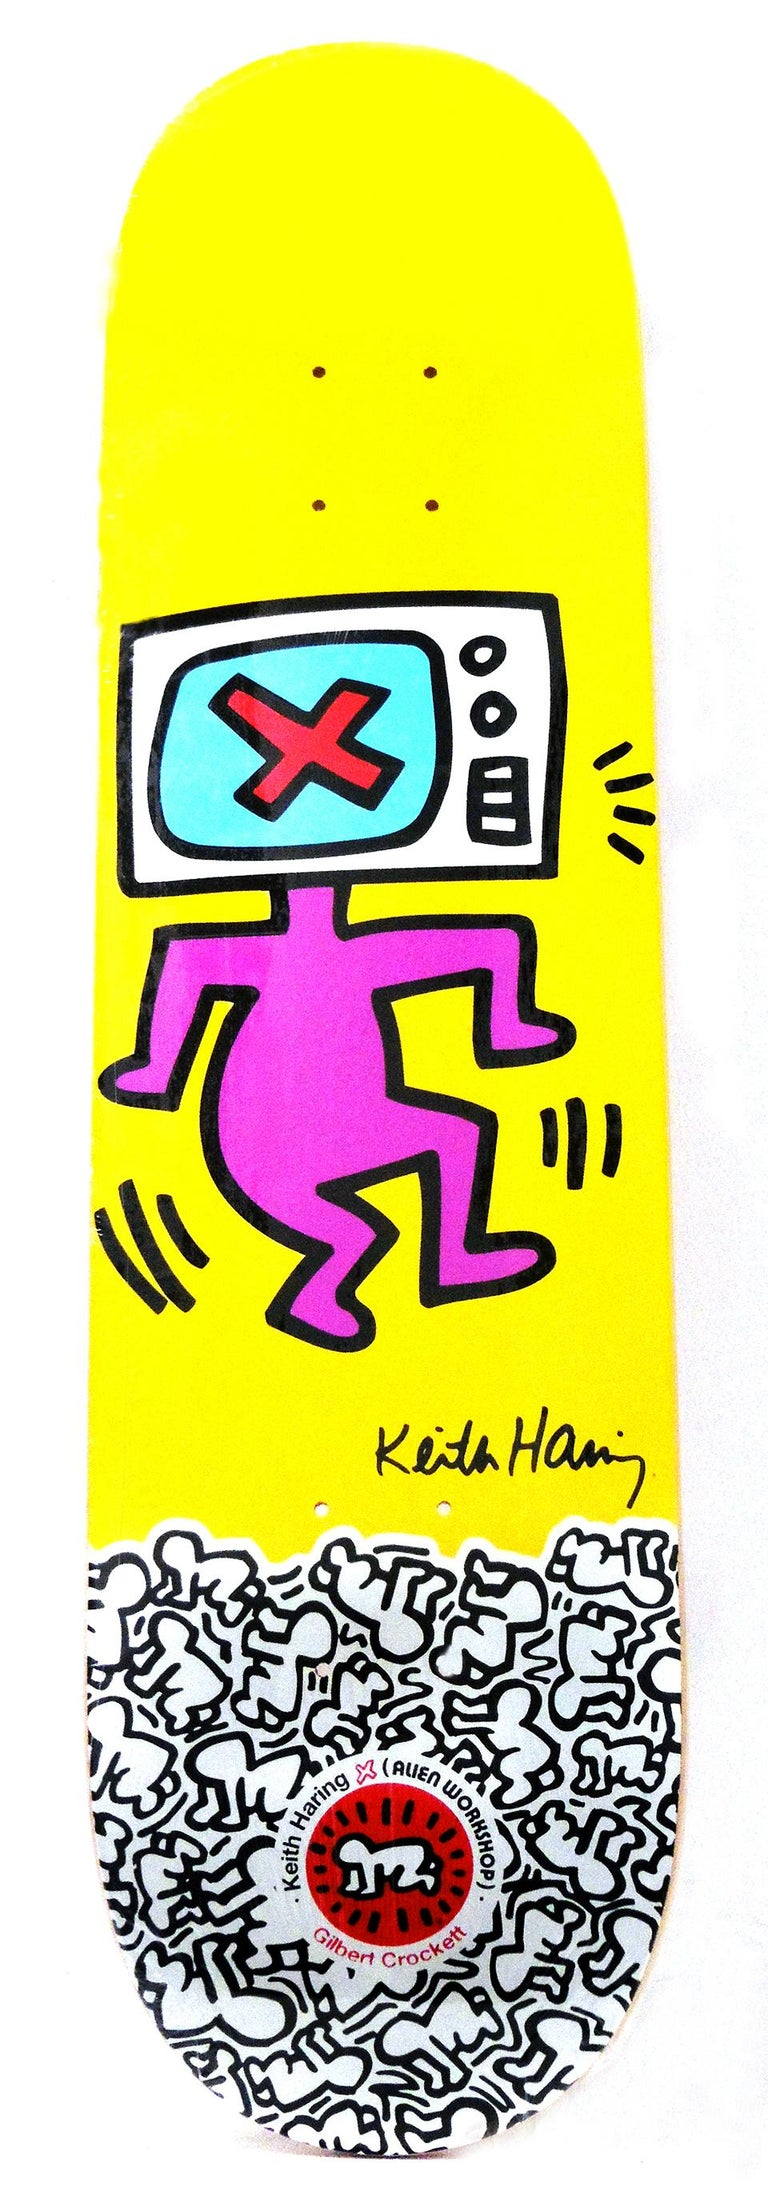 Keith Haring TV Head Skate Deck (Keith Haring yellow) - Pop Art Art by (after) Keith Haring